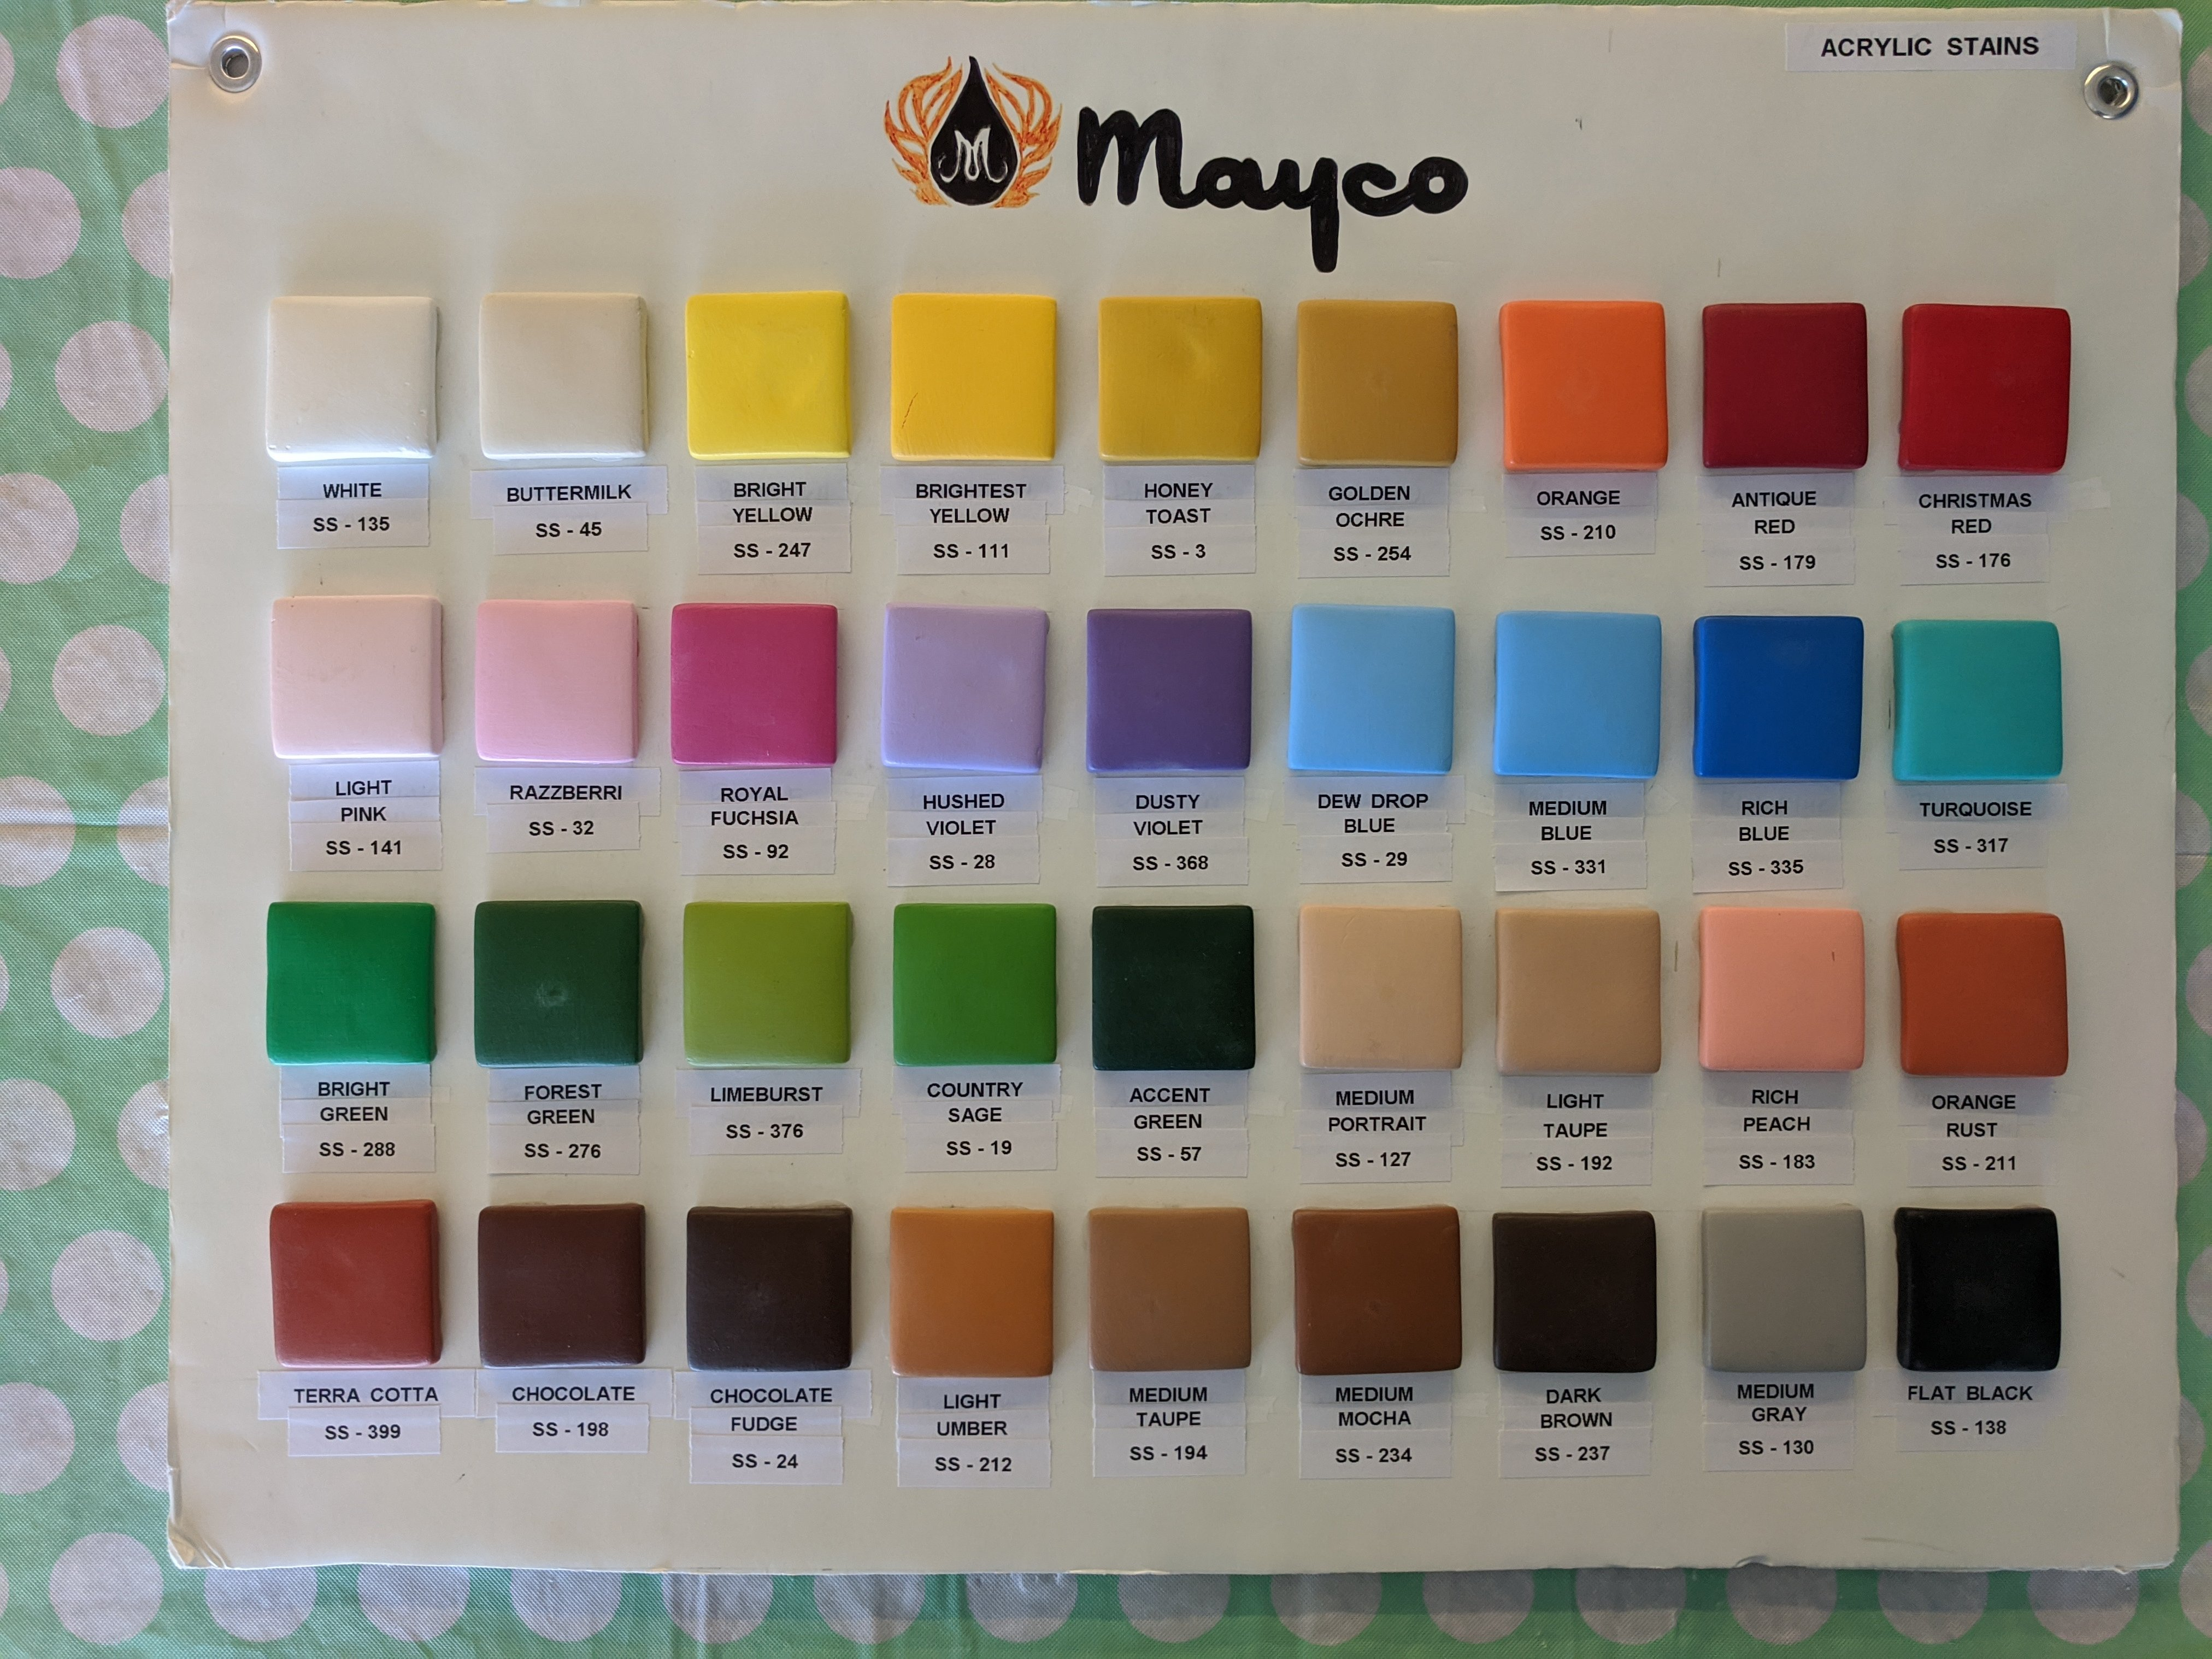 Mayco Acrylic Stains